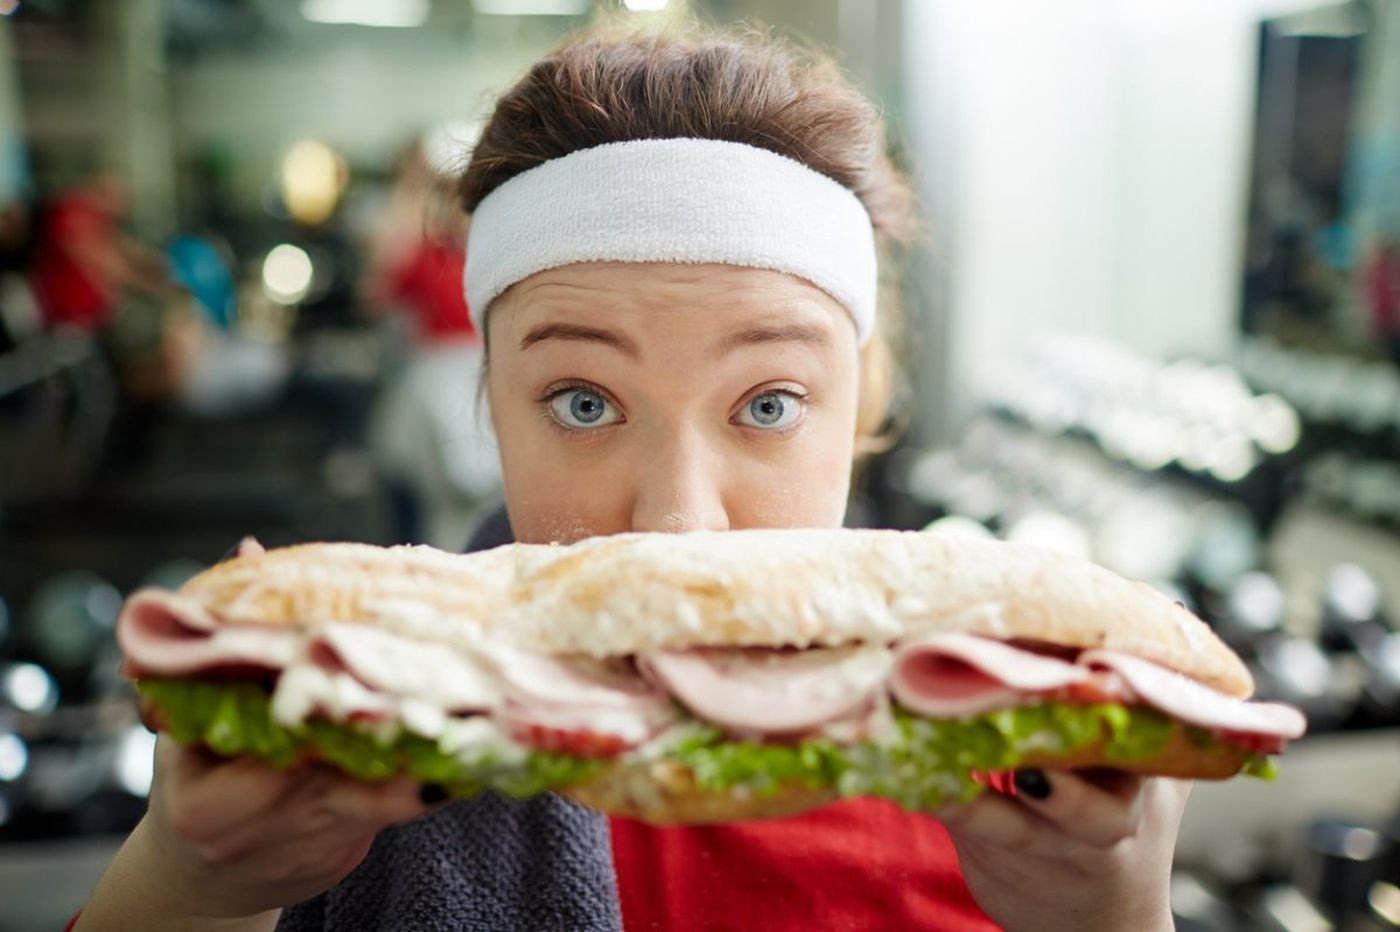 Rewards after a workout should have nothing to do with food. Here's how to break the cycle